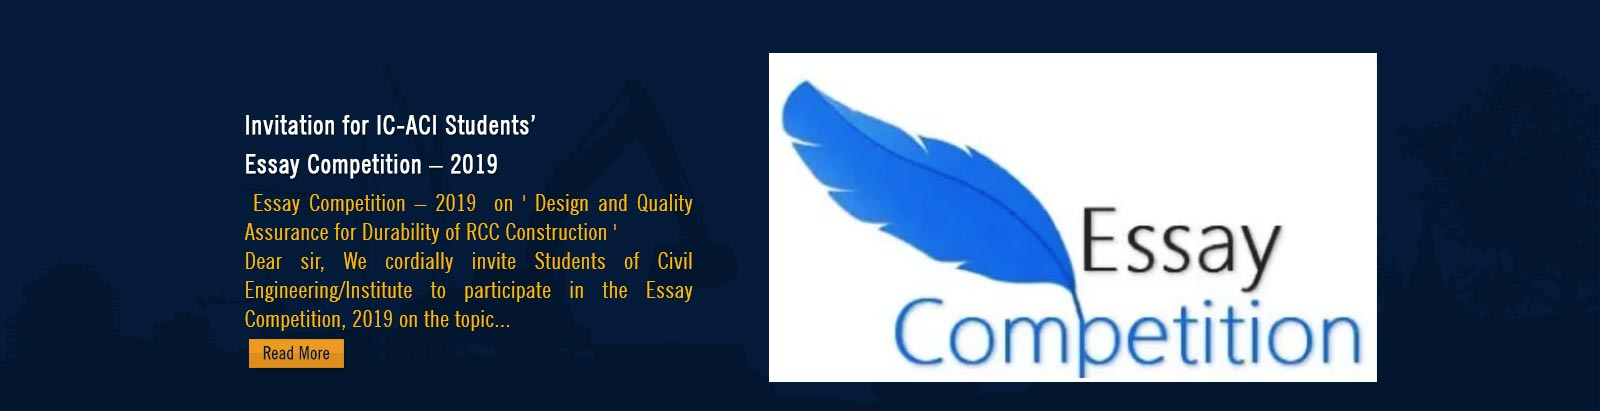 essay-competition-banner-1